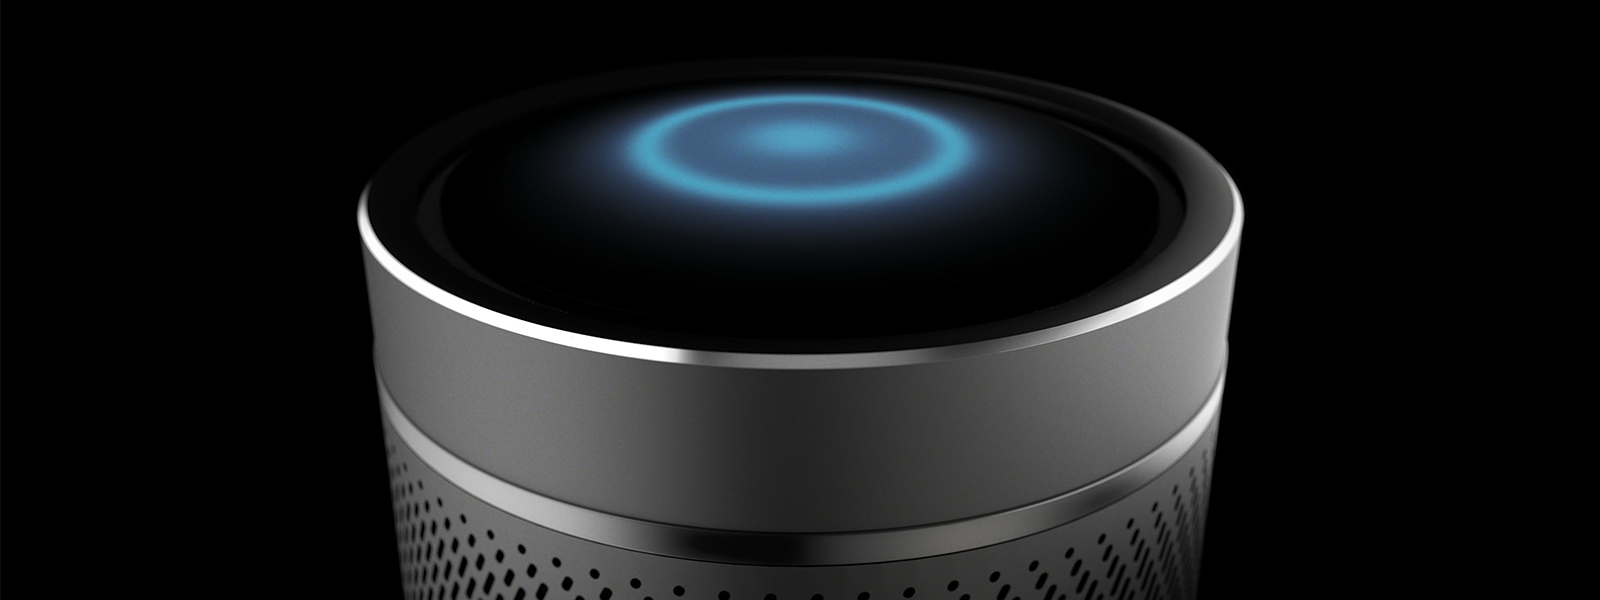 Top of Invoke speaker showing Cortana glow